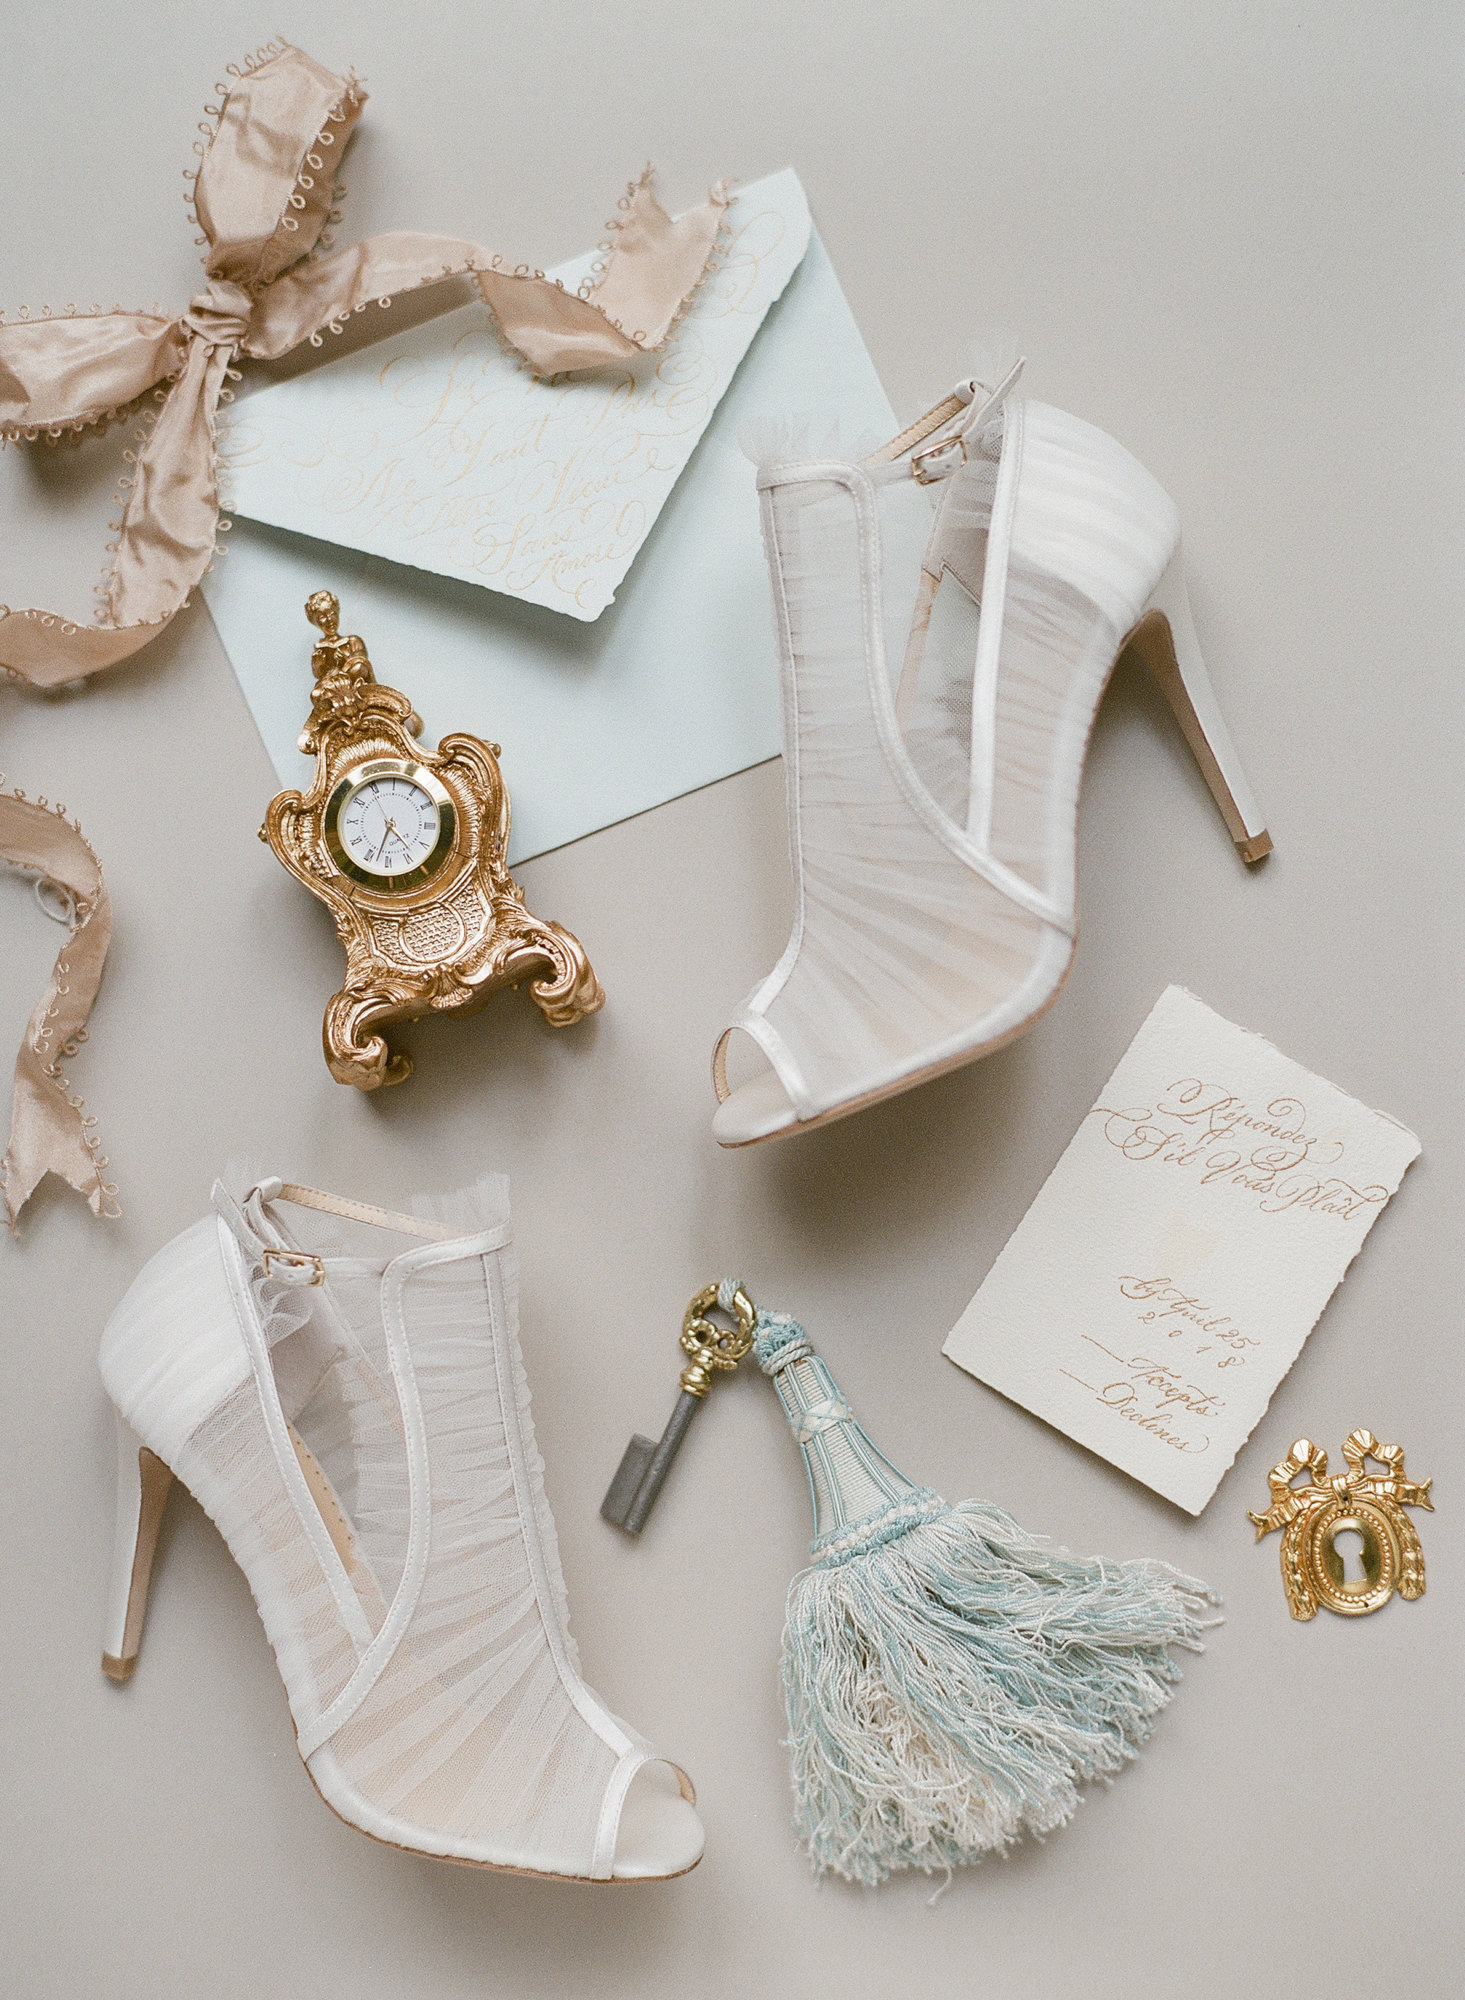 Sheer white sandals with ribbon accent - photo by Gianluca Adovasio Photography